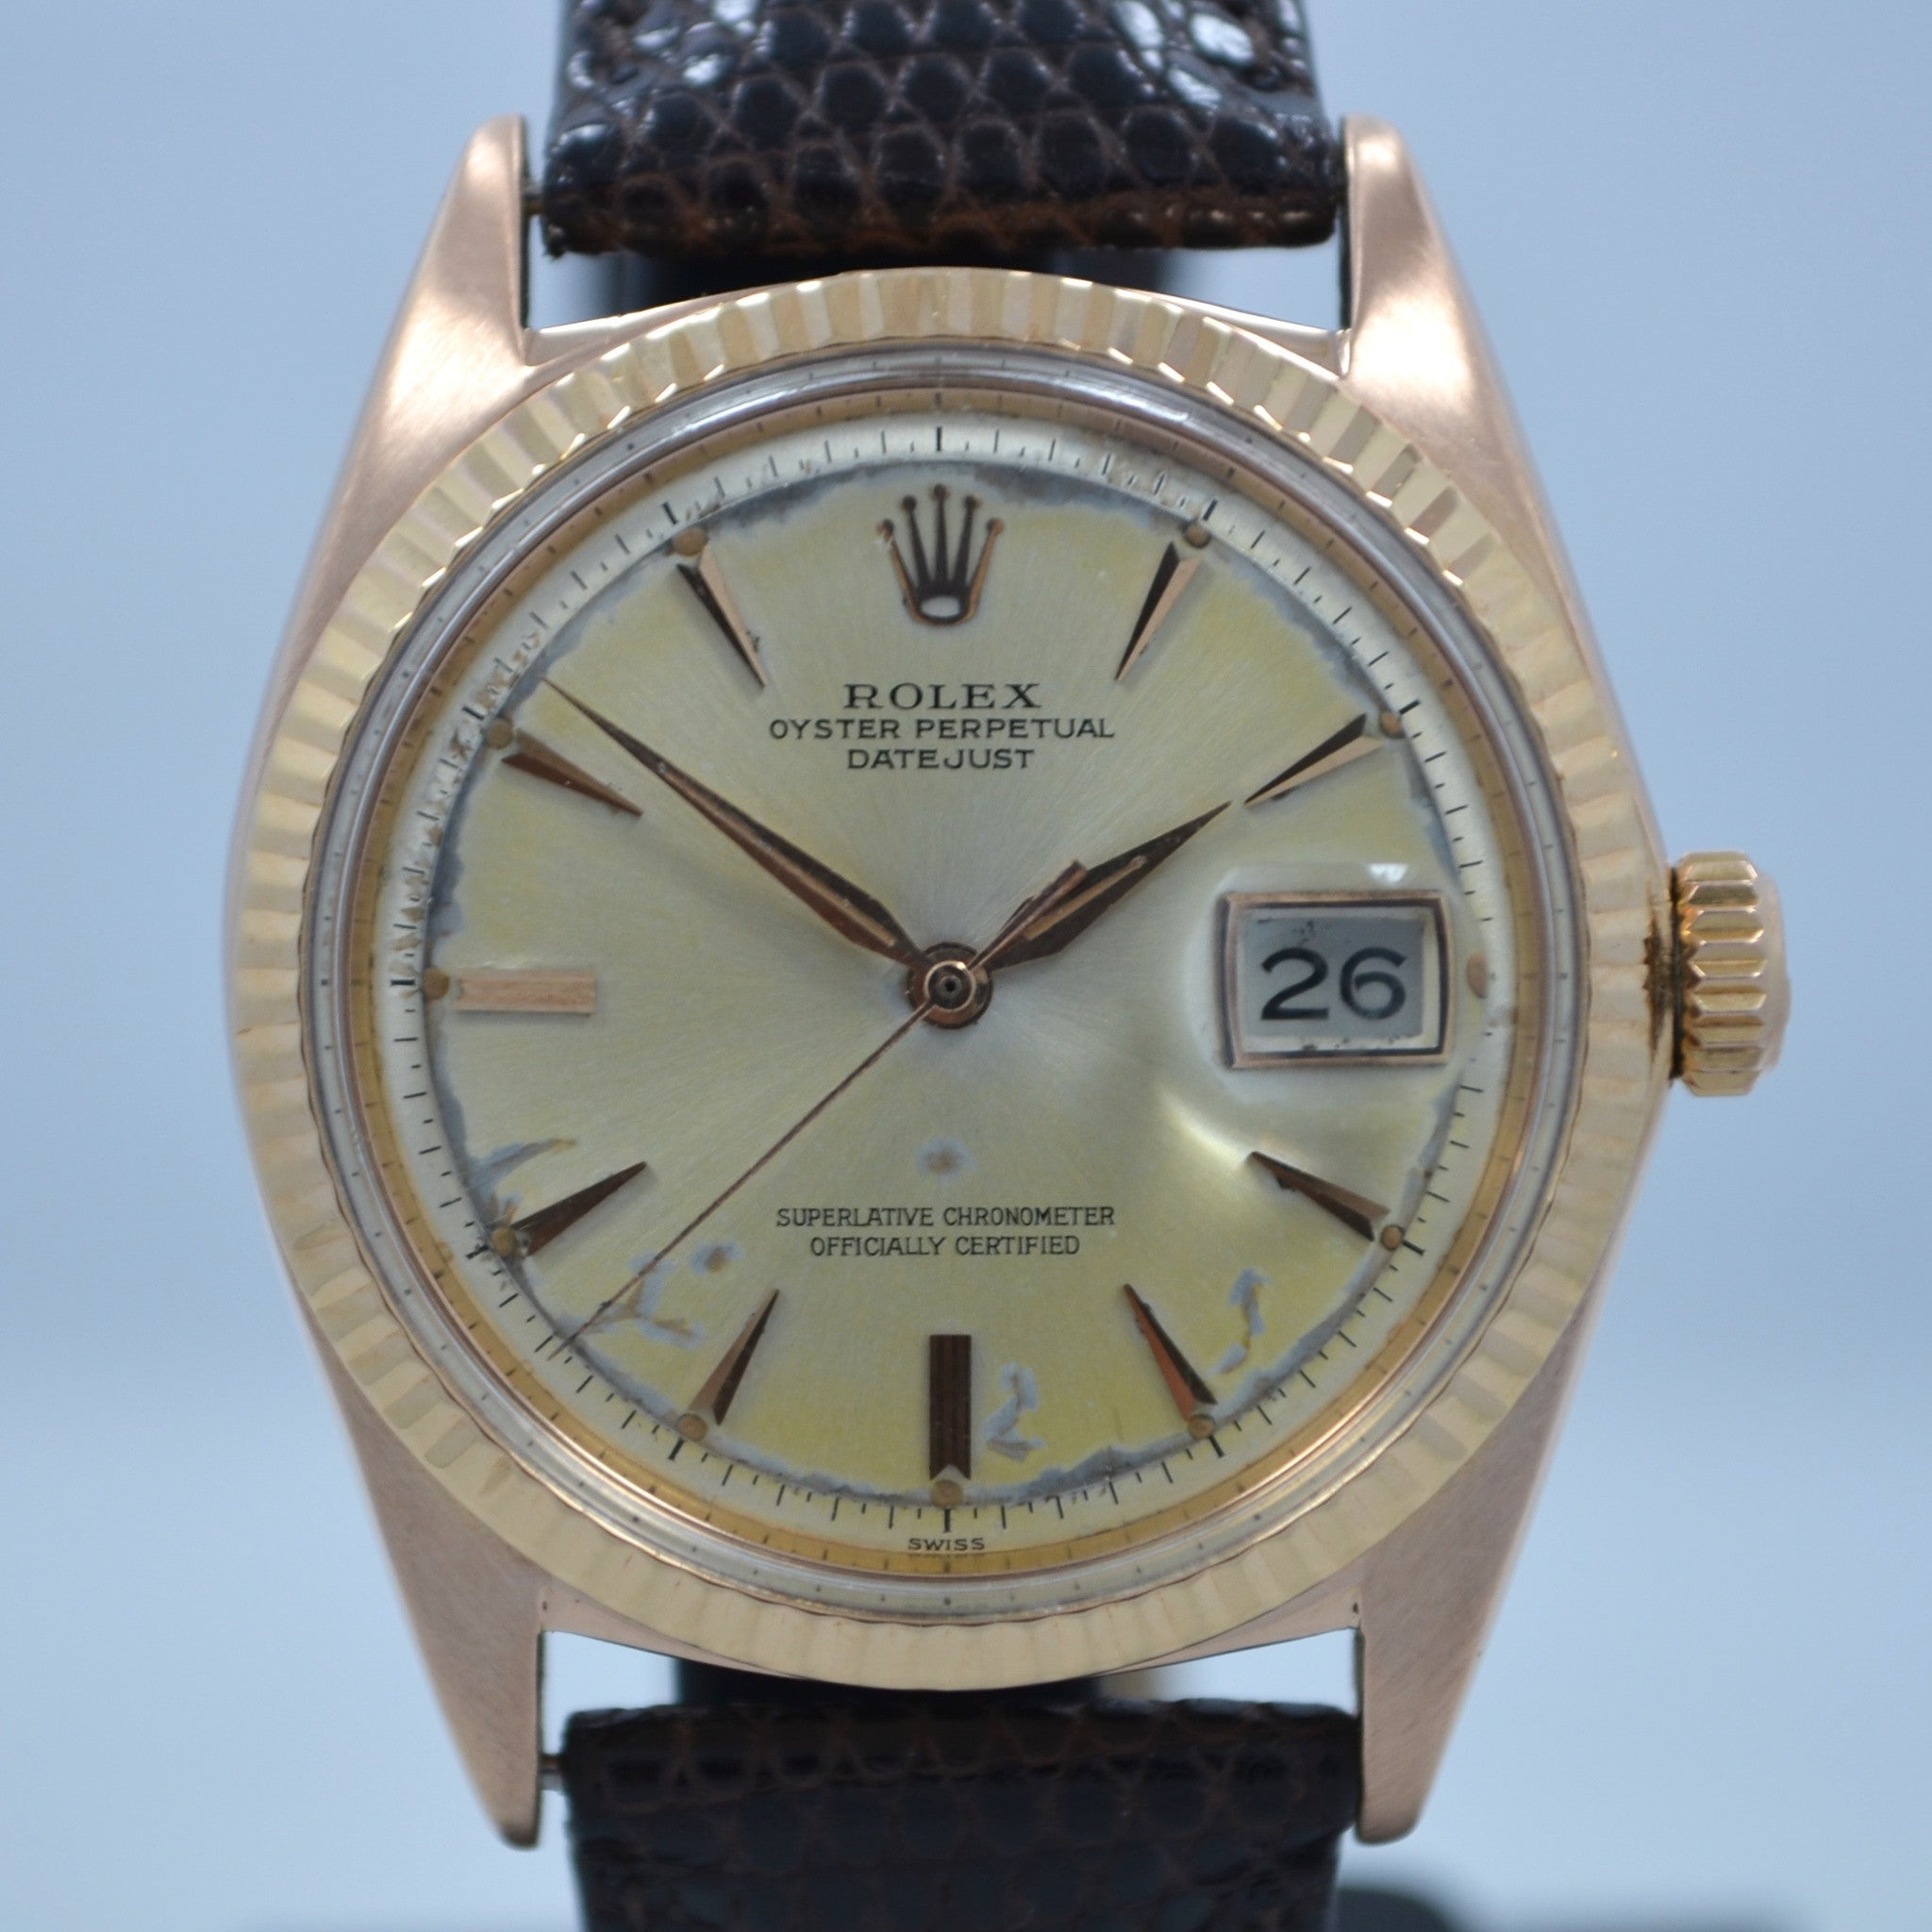 Vintage Rolex Datejust 1601 Oyster Perpetual 18K Rose Gold 1959 Wristwatch - Hashtag Watch Company